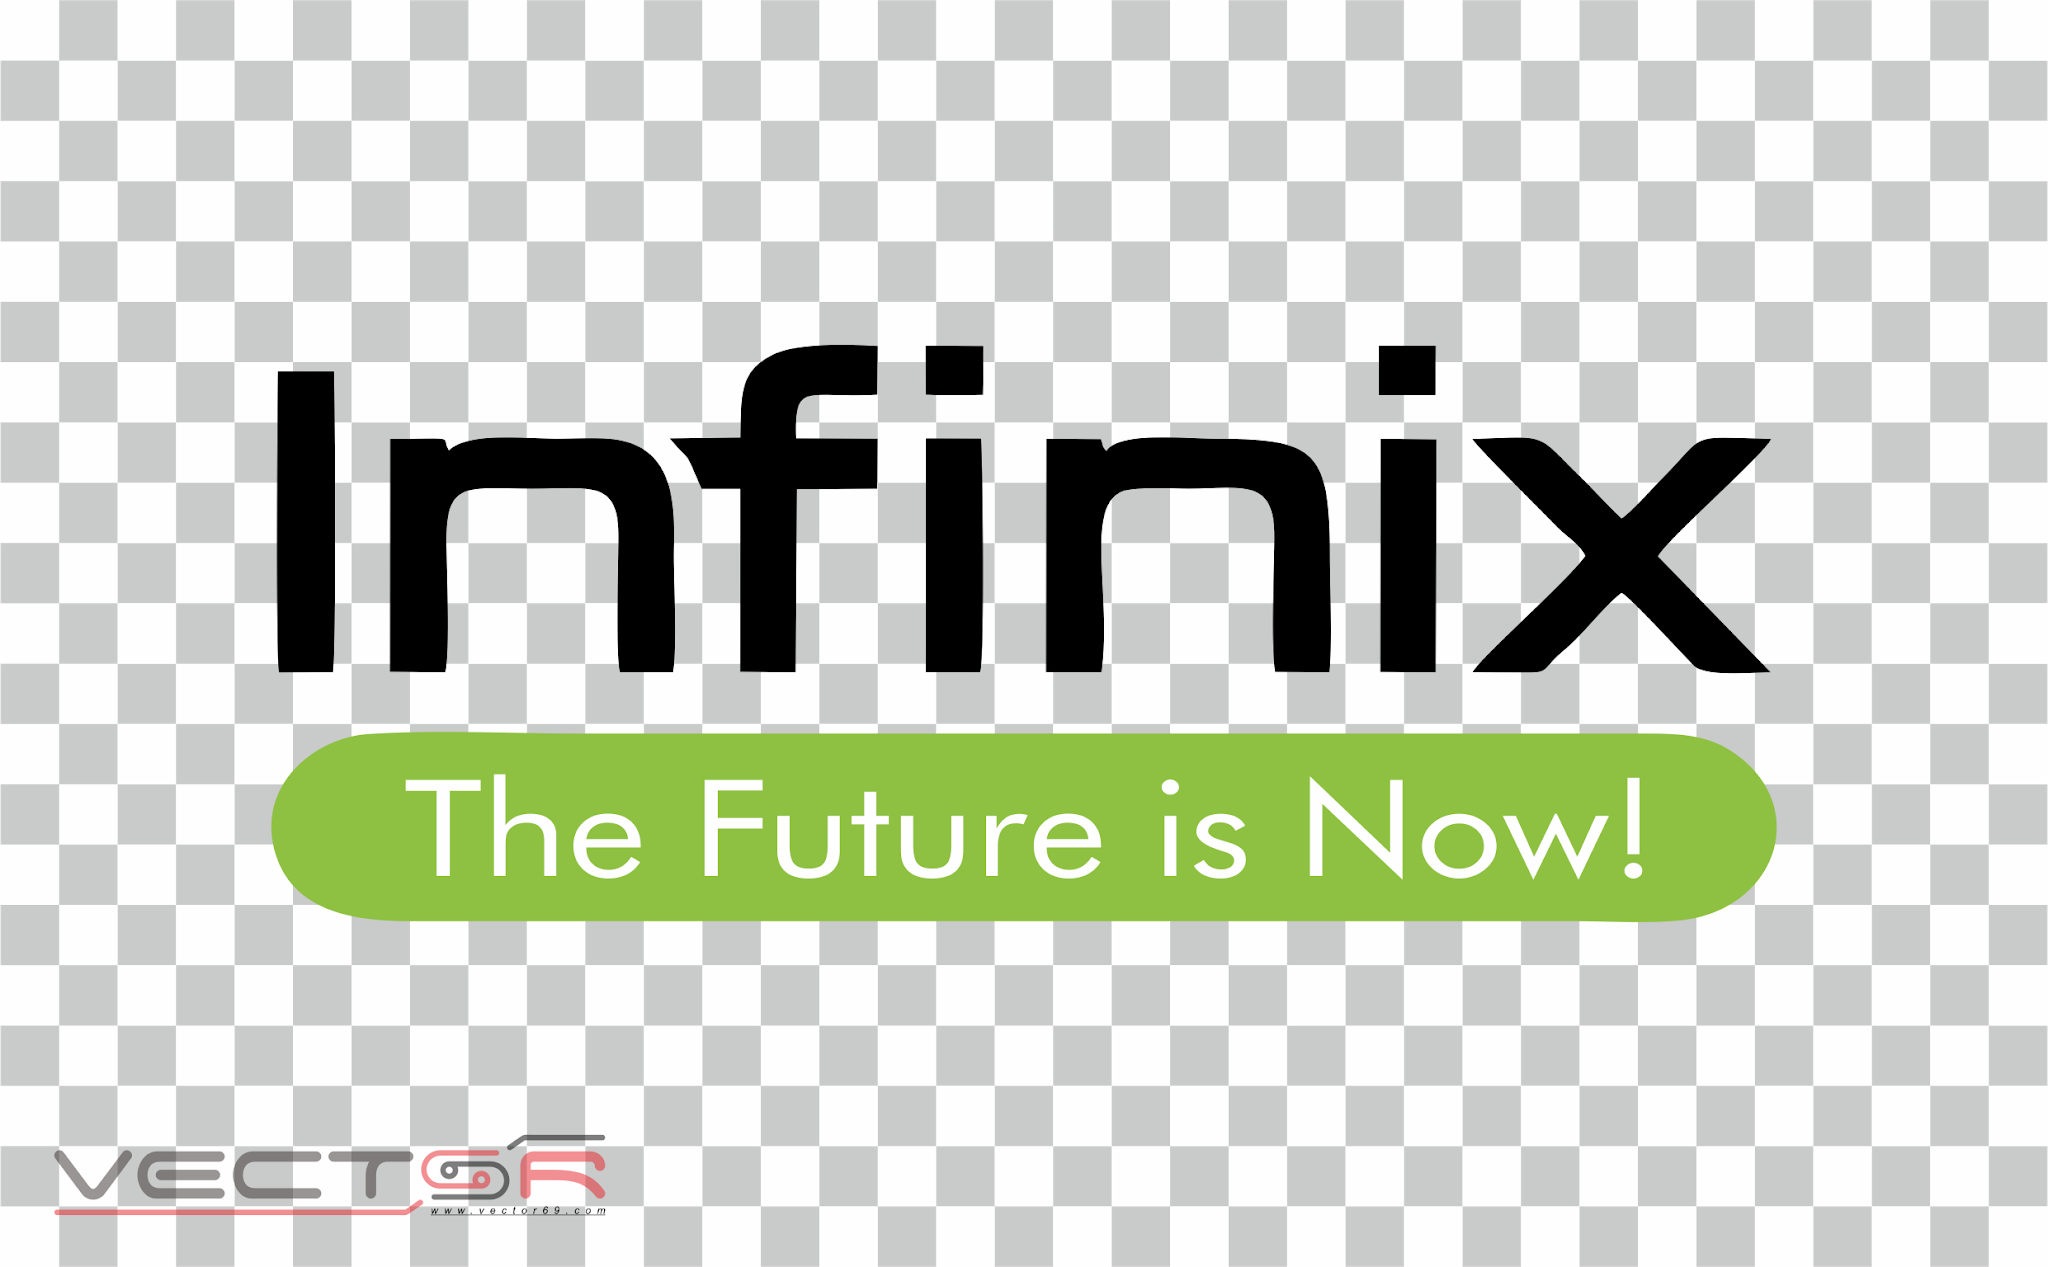 Infinix Logo - Download Vector File PNG (Portable Network Graphics)